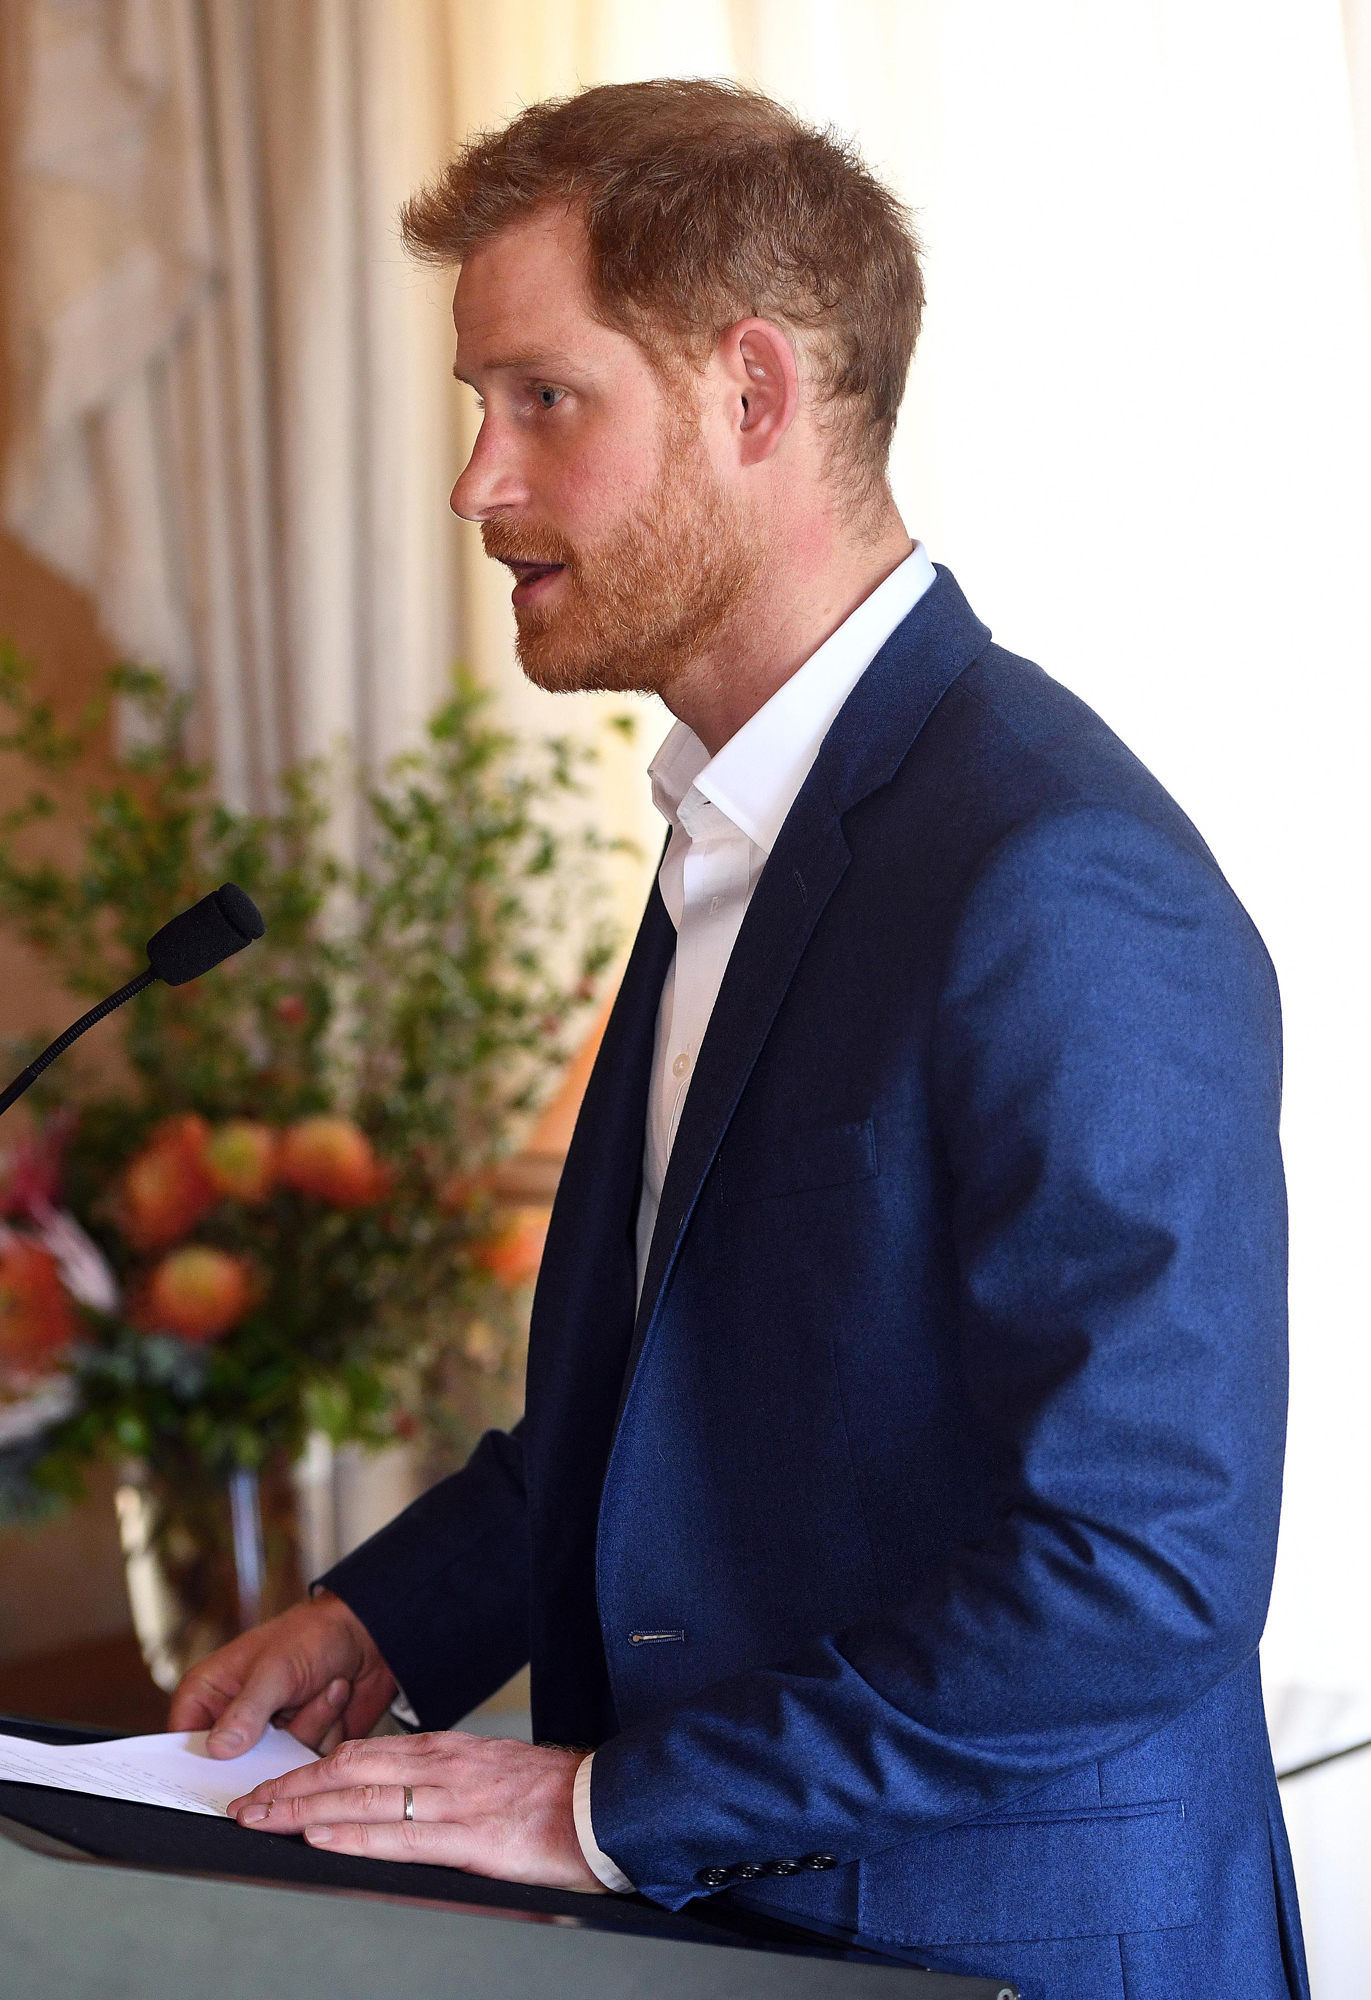 Prince Harry and Meghan Duchess of Sussex tour of Australia, Day 1, Sydney - 16 Oct 2018